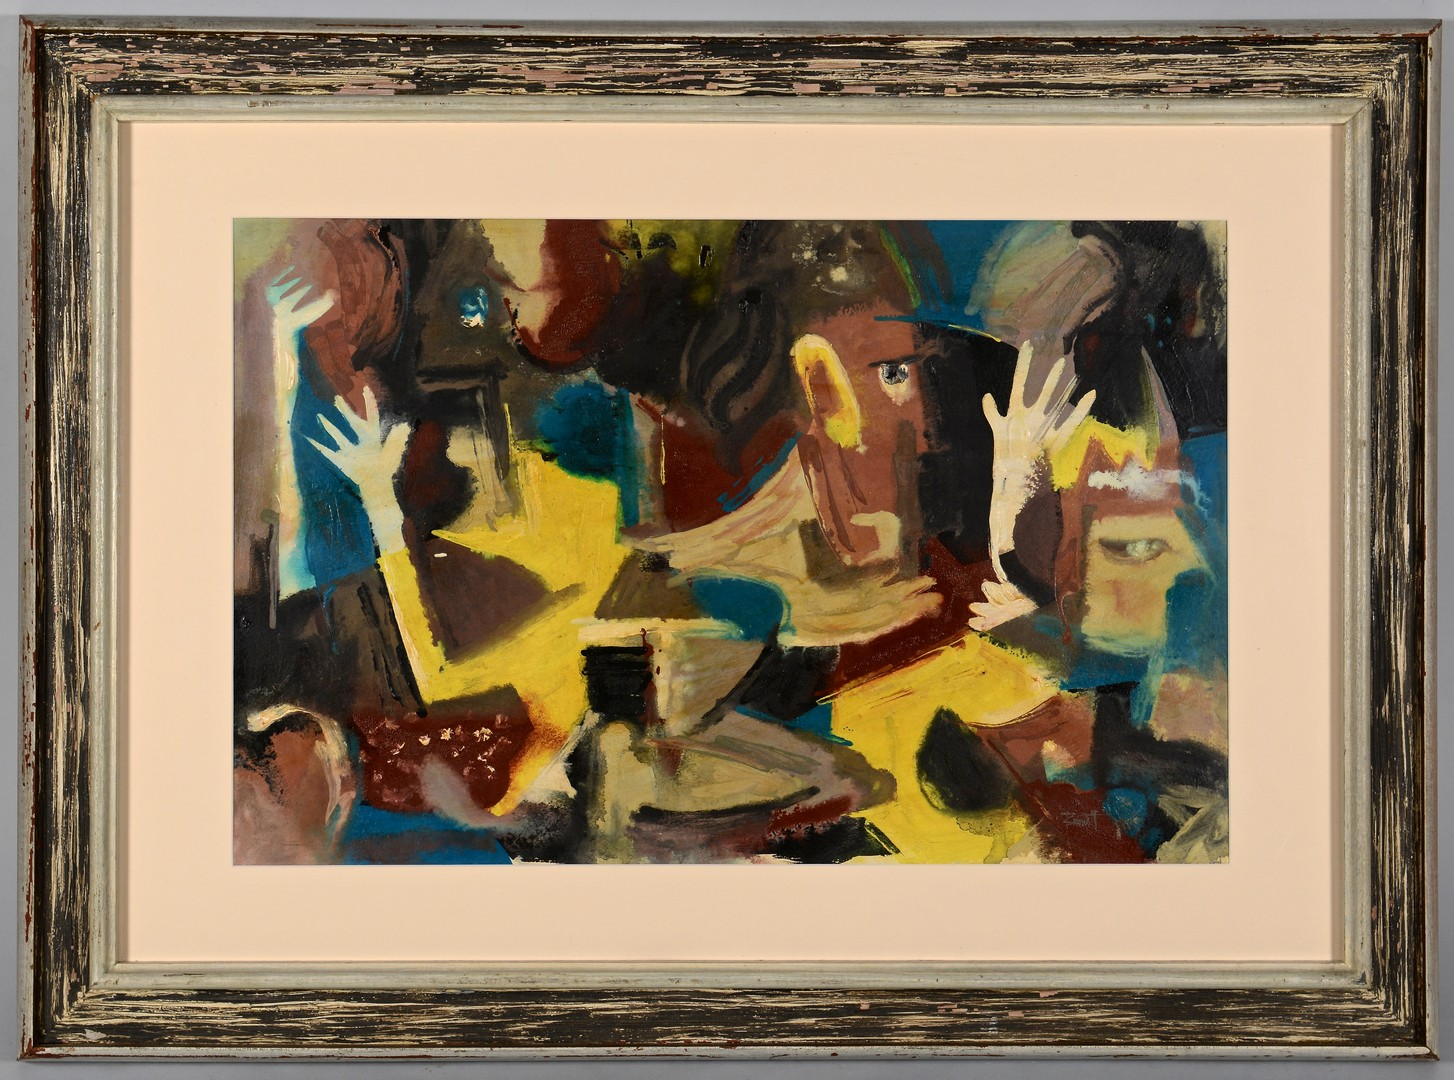 Lot 3832450: Ted Burnett Mixed Media Abstract Painting